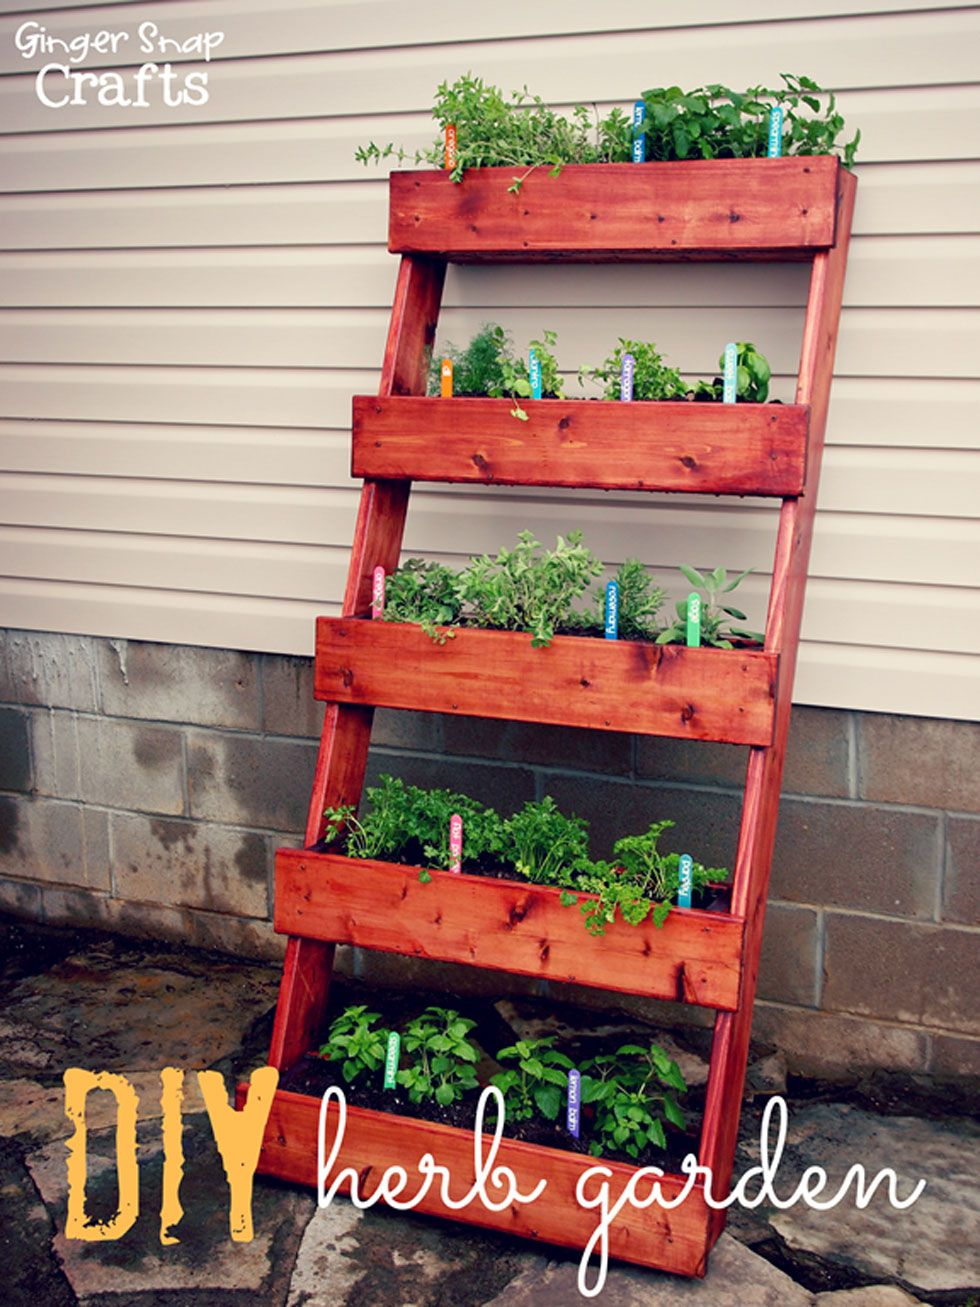 30+ Creative Ways to Plant a Vertical Garden - How To Make a ... on house plant poles, house plant trays, house plant containers, house plant watering devices, house plant holders, house plant stakes, house plant shelving, house plant supports, house plant stands, house plant hangers,